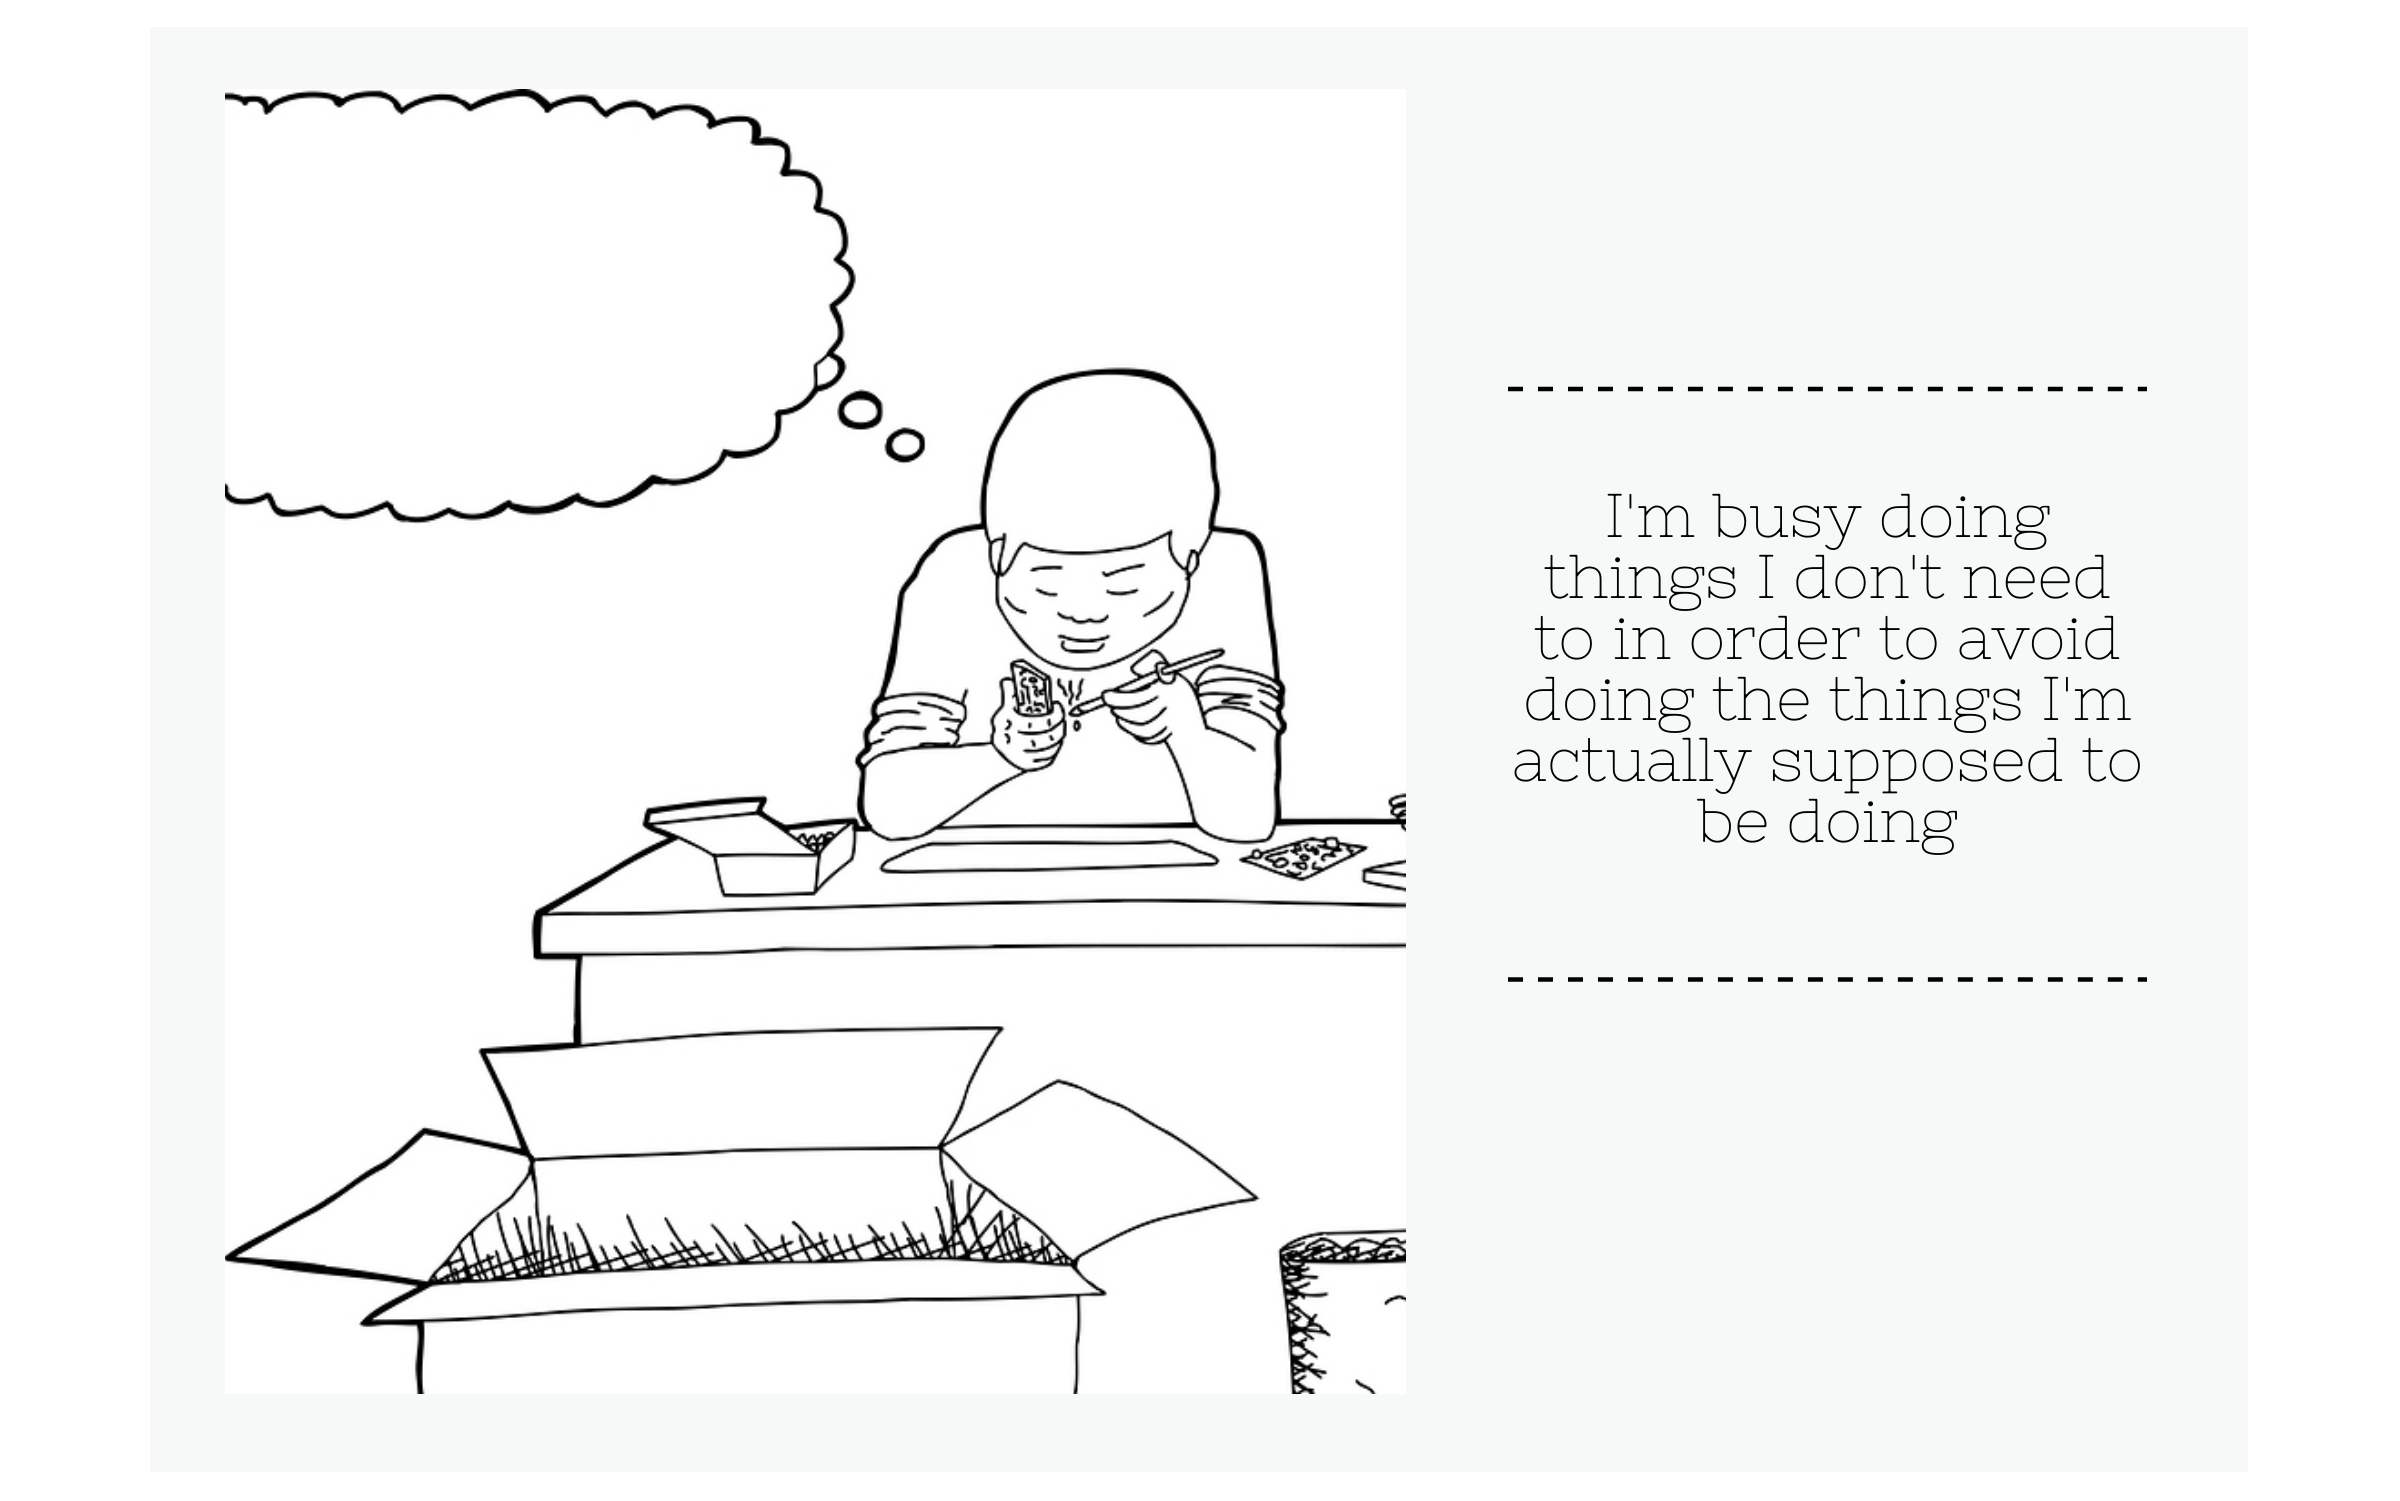 Avoiding tasks procrastination comic